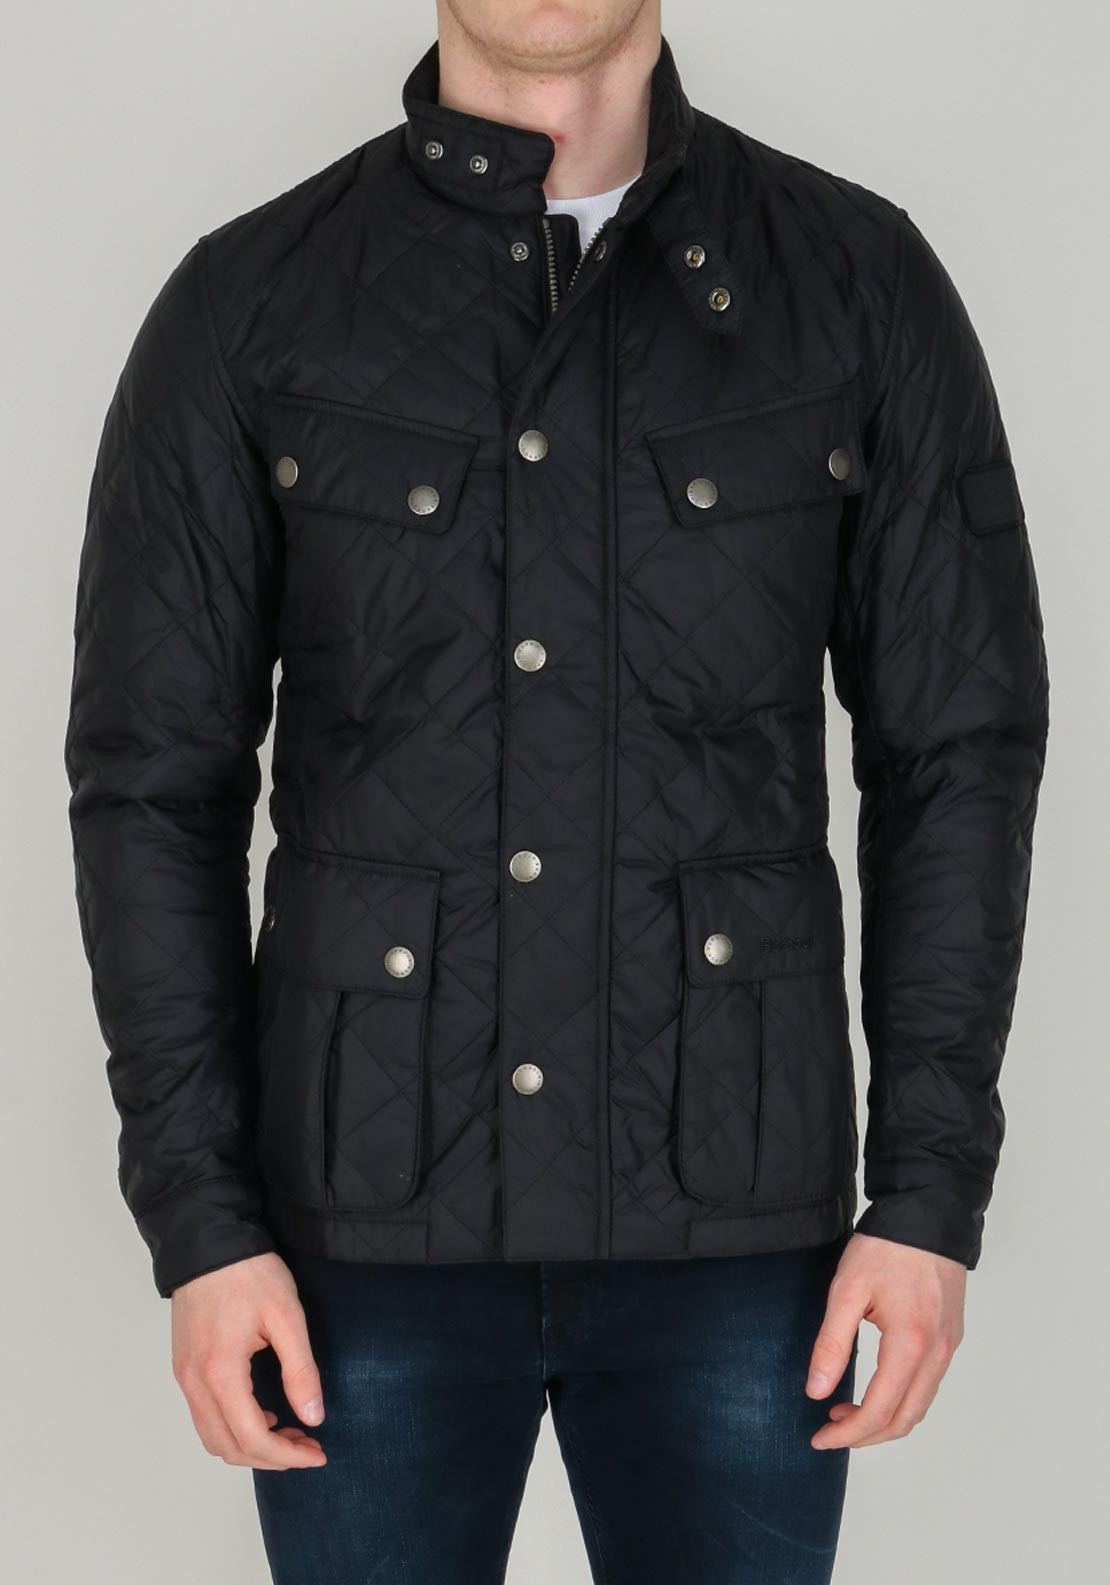 debcf2247 Barbour International Men's Ariel Quilted Jacket, Black. Be the first to  review this product